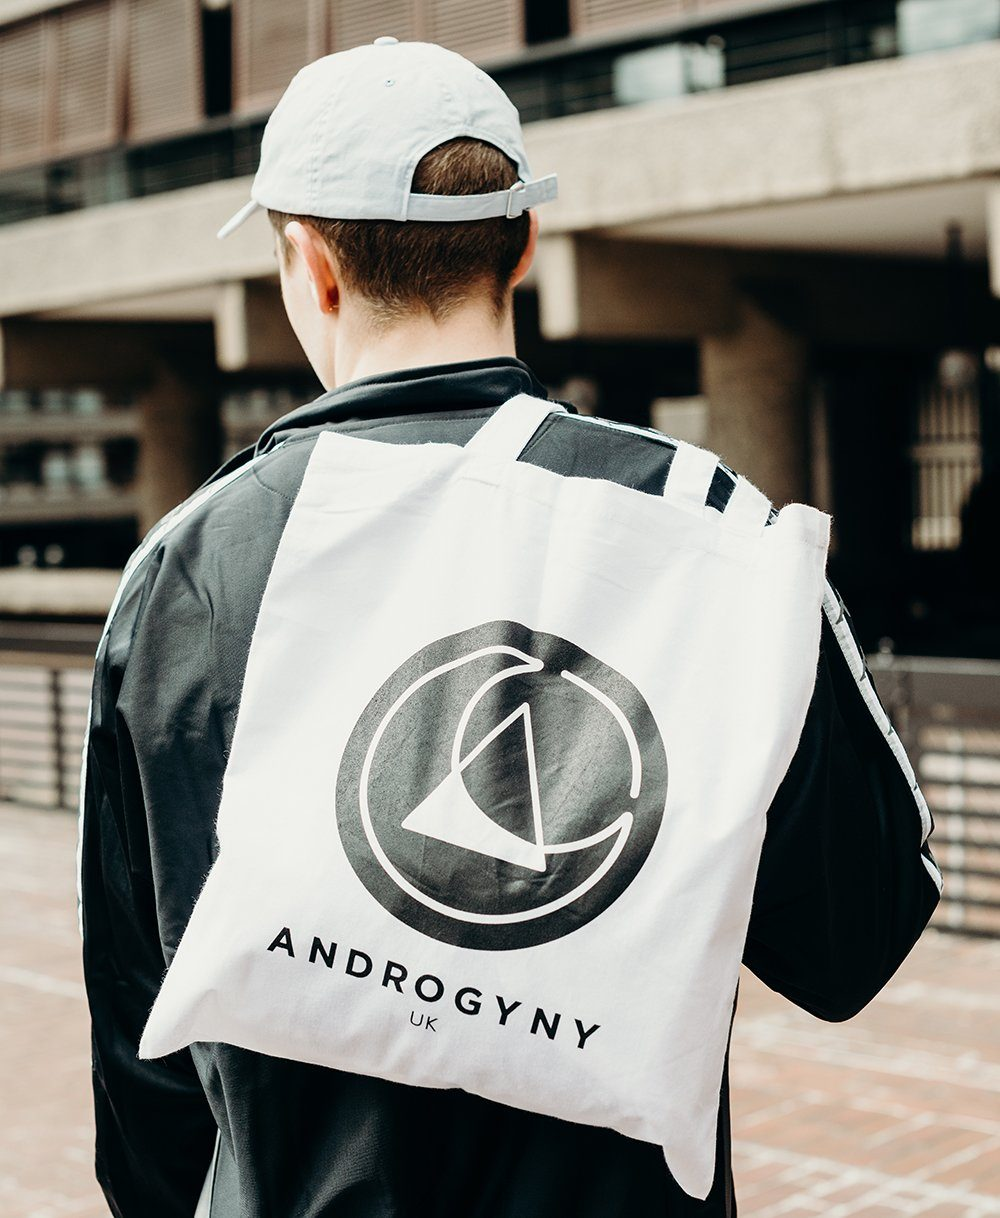 printed tote bag by ethical gender neutral streetwear fashion brand Androgyny UK